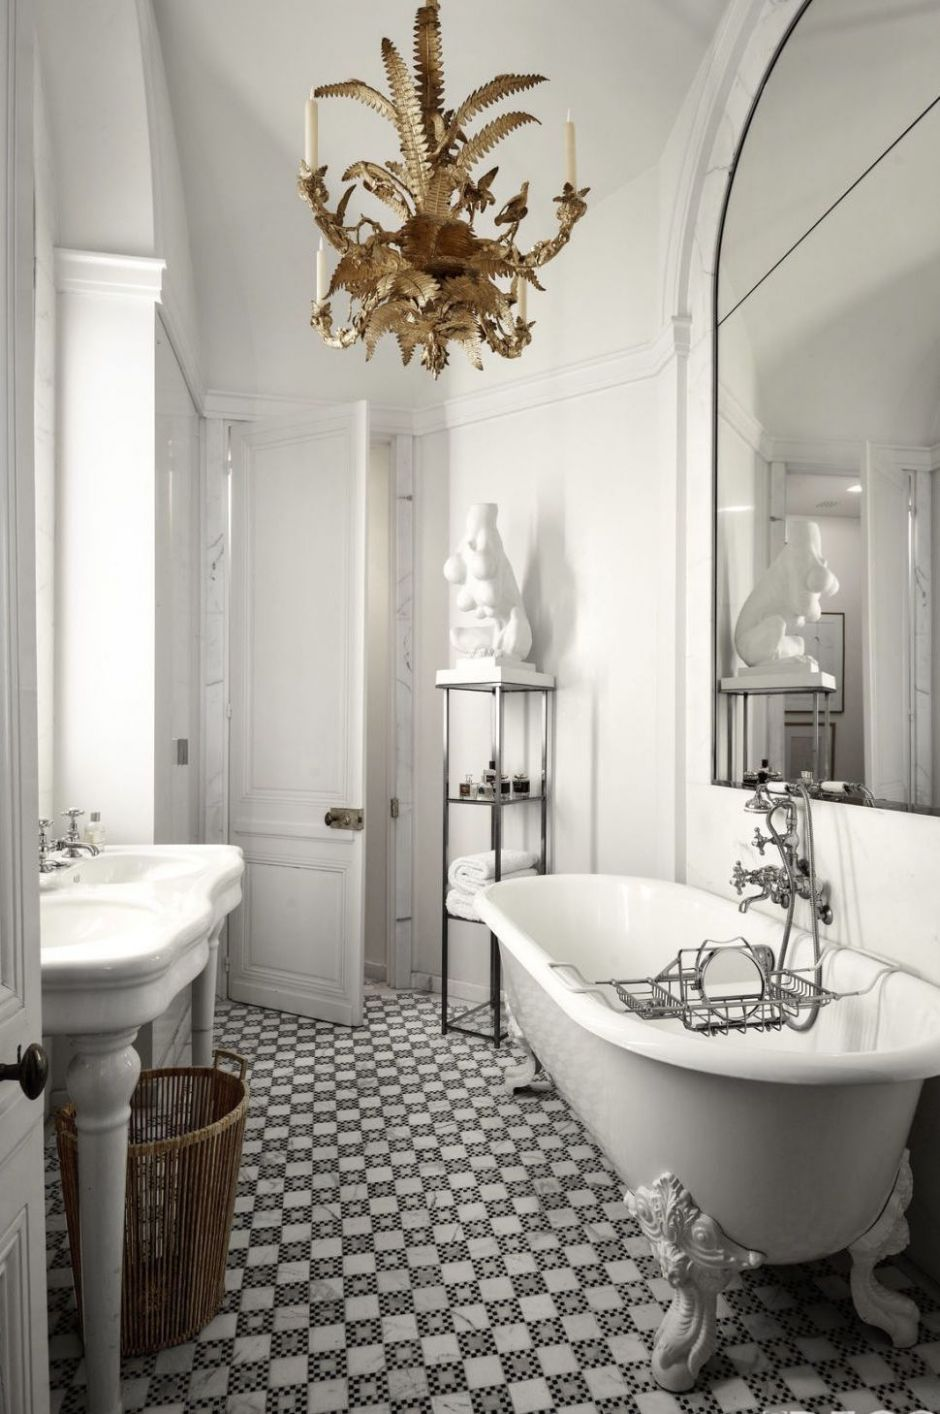 11 Modern Bathrooms That Make The Case For Luxury | Parisian ..